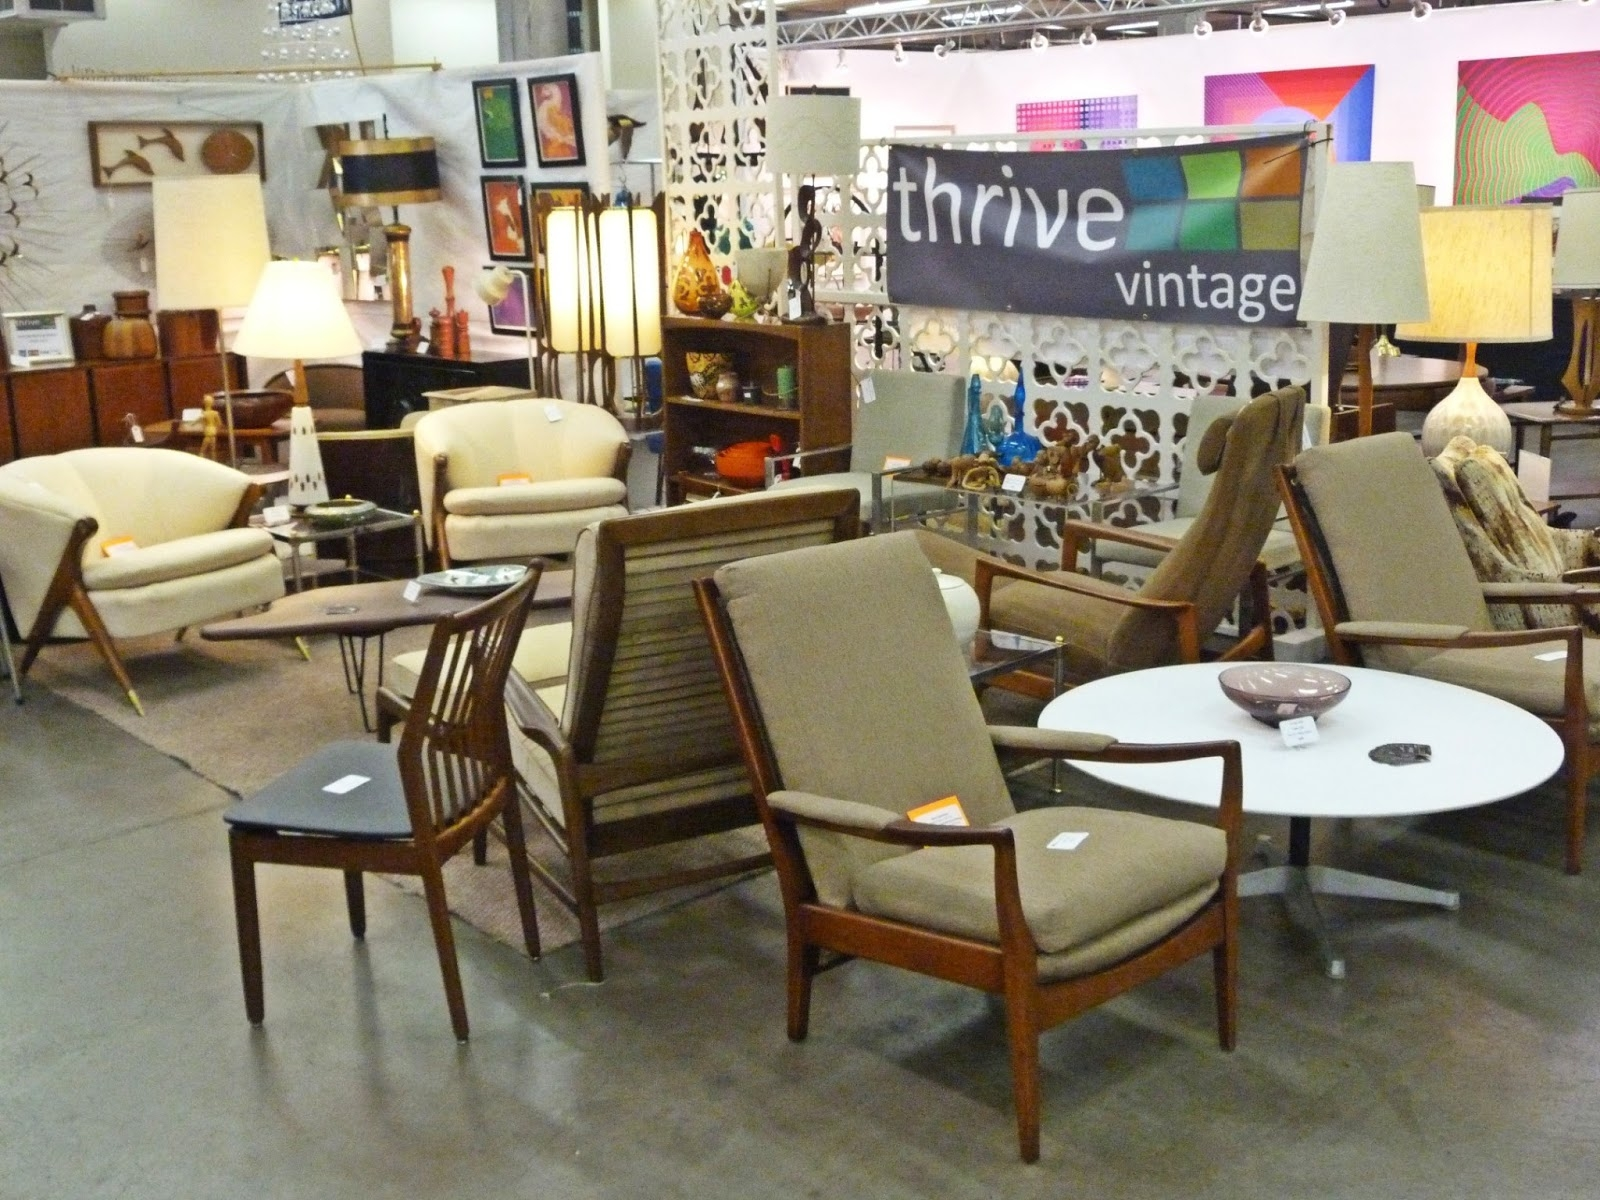 Brilliant Wellliked Cintique Mid Century Armchairs Pertaining To Modern Mid Century Danish Vintage Furniture Shop Used (View 7 of 15)